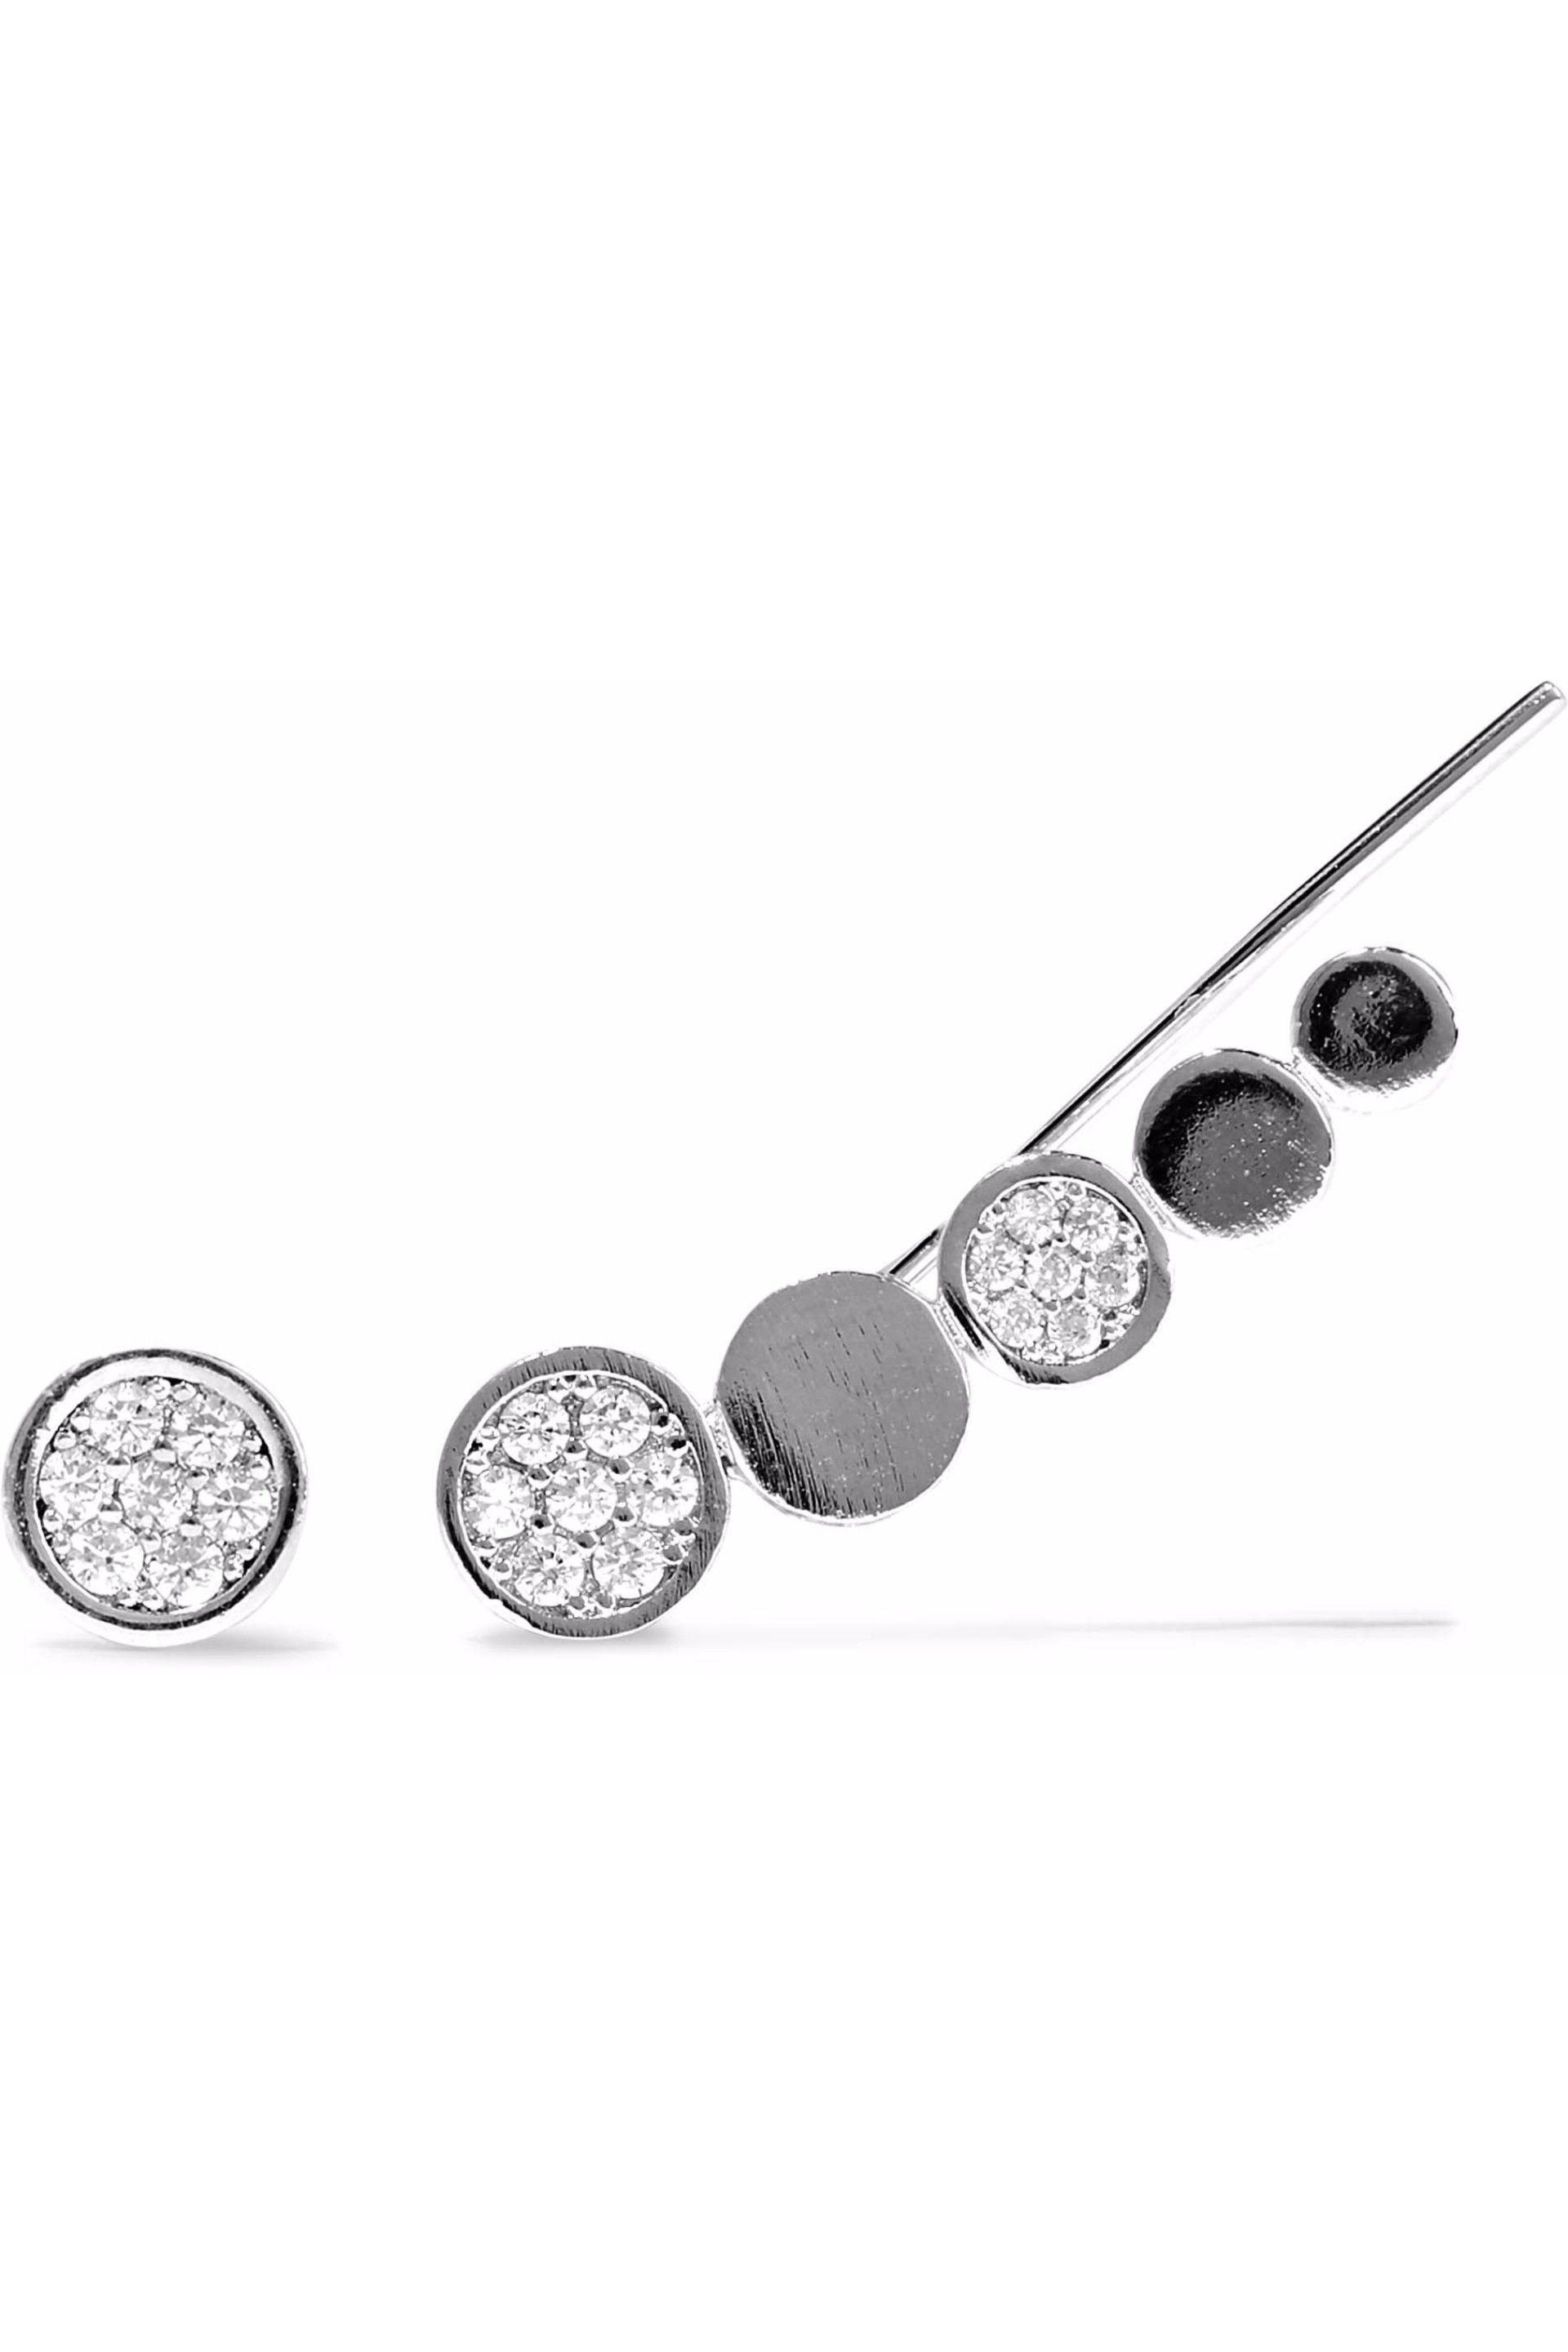 Astrid & Miyu Astrid & Miyu Woman Fitzgerald Rhodium-plated Crystal Earrings Silver Size B39kk